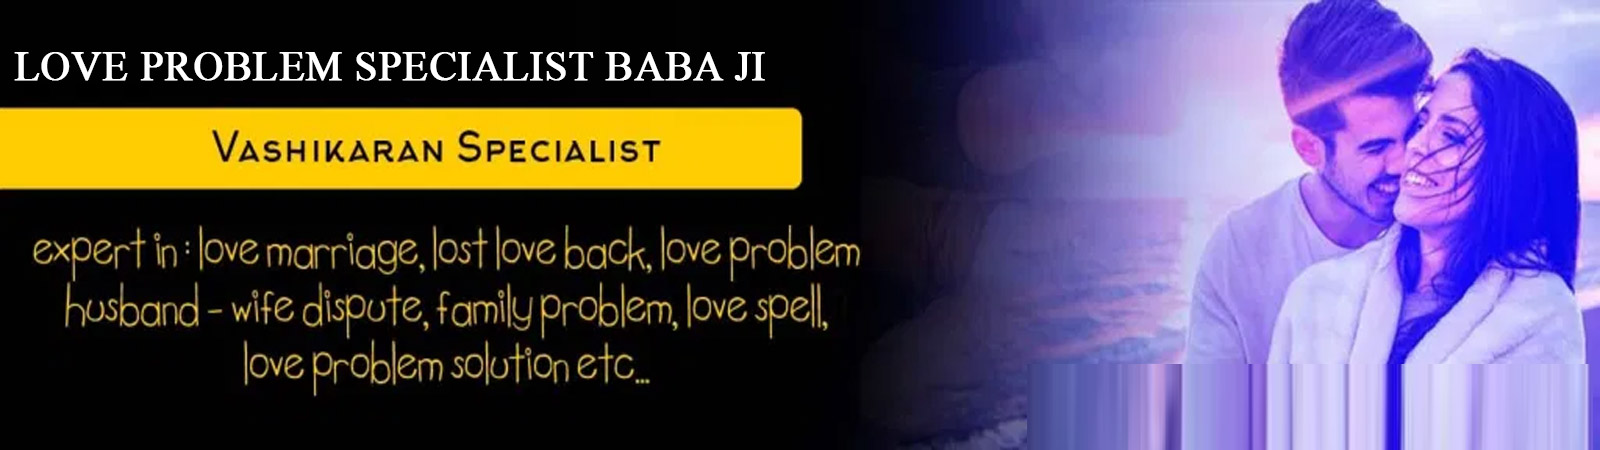 Vashikaran Astrologer Specialist Baba in India